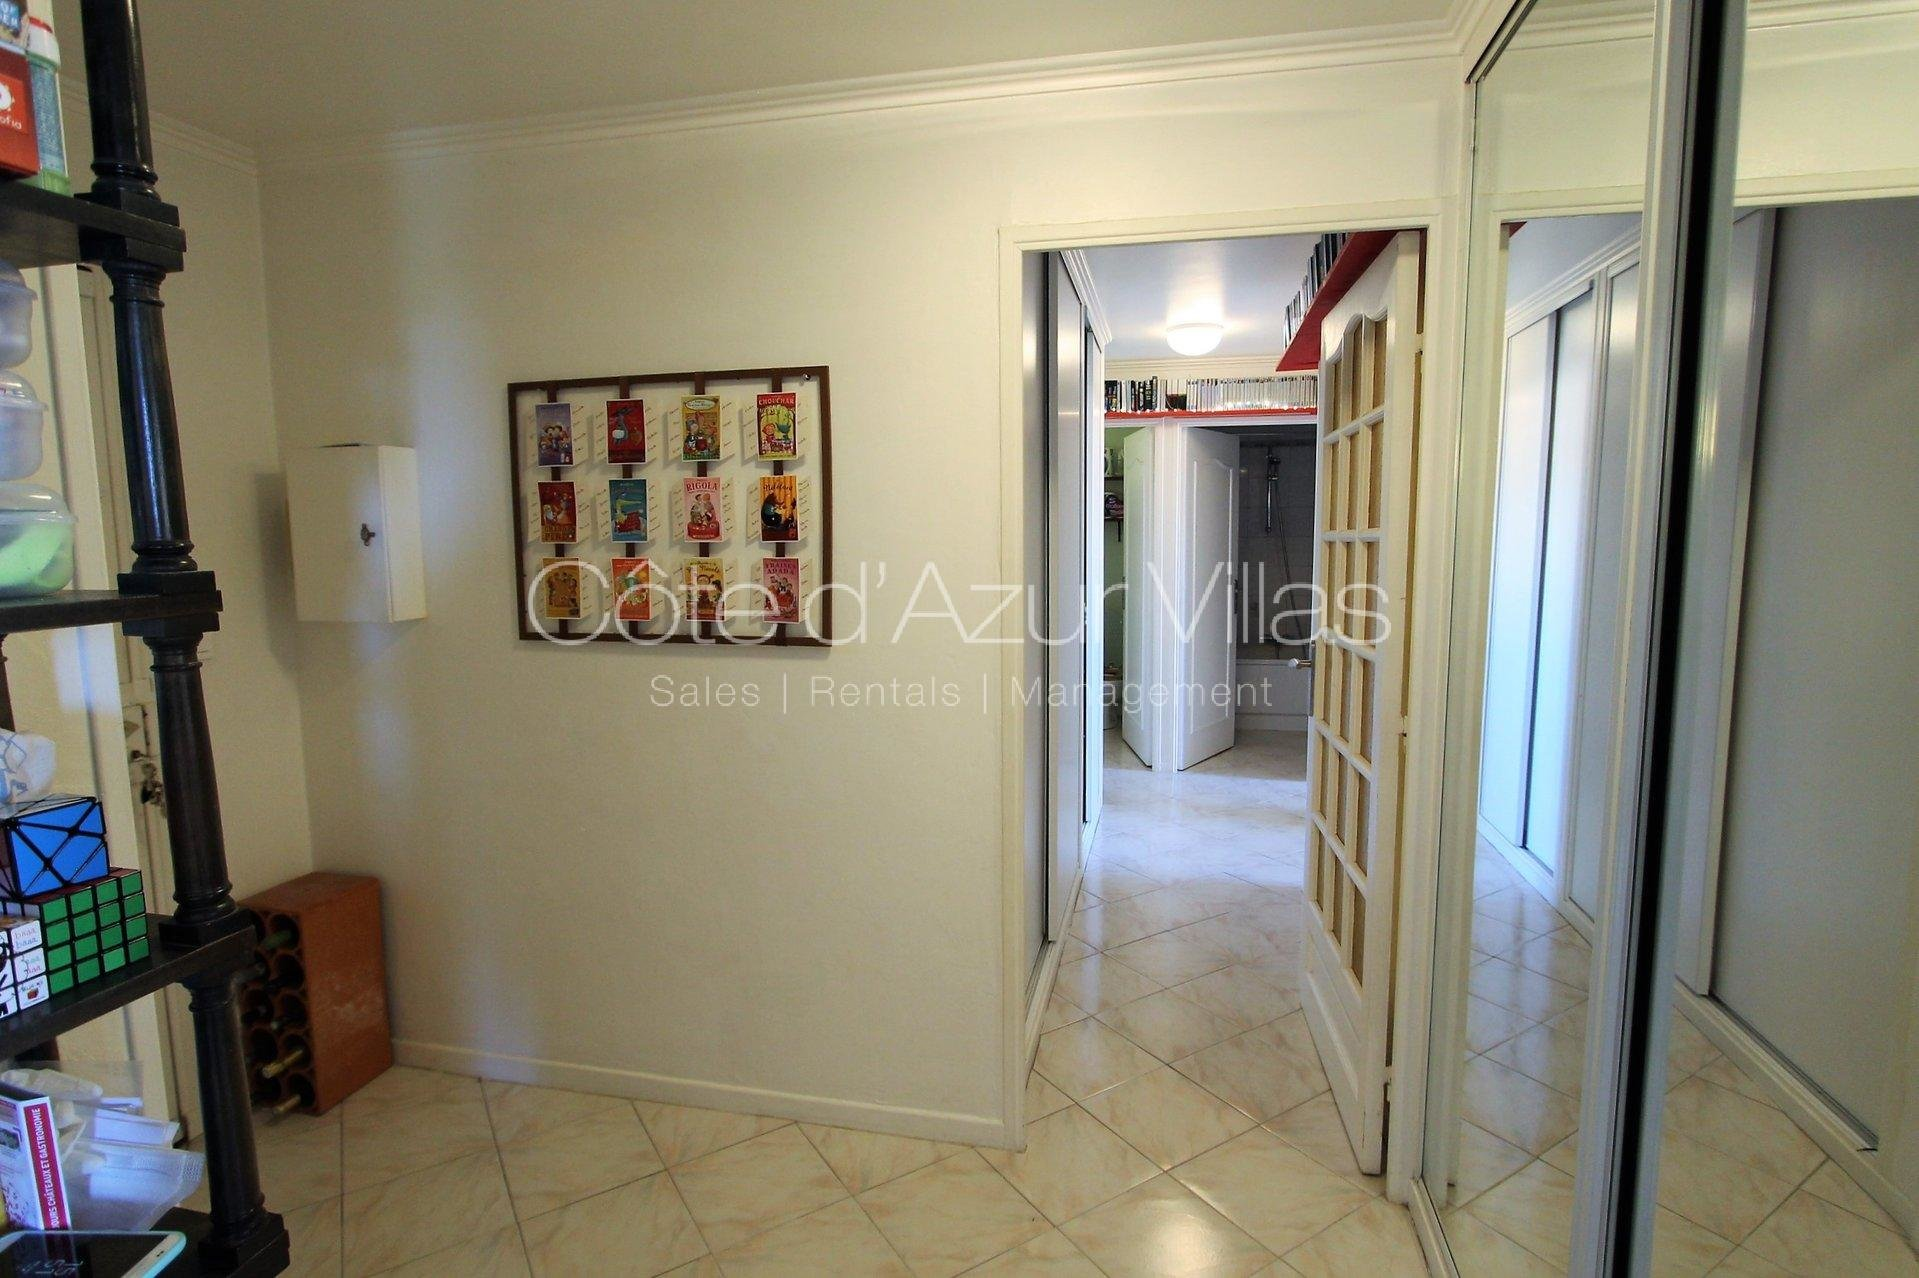 Antibes Les Semboules - 3 bedroom apartment  ideally situated in a quiet area